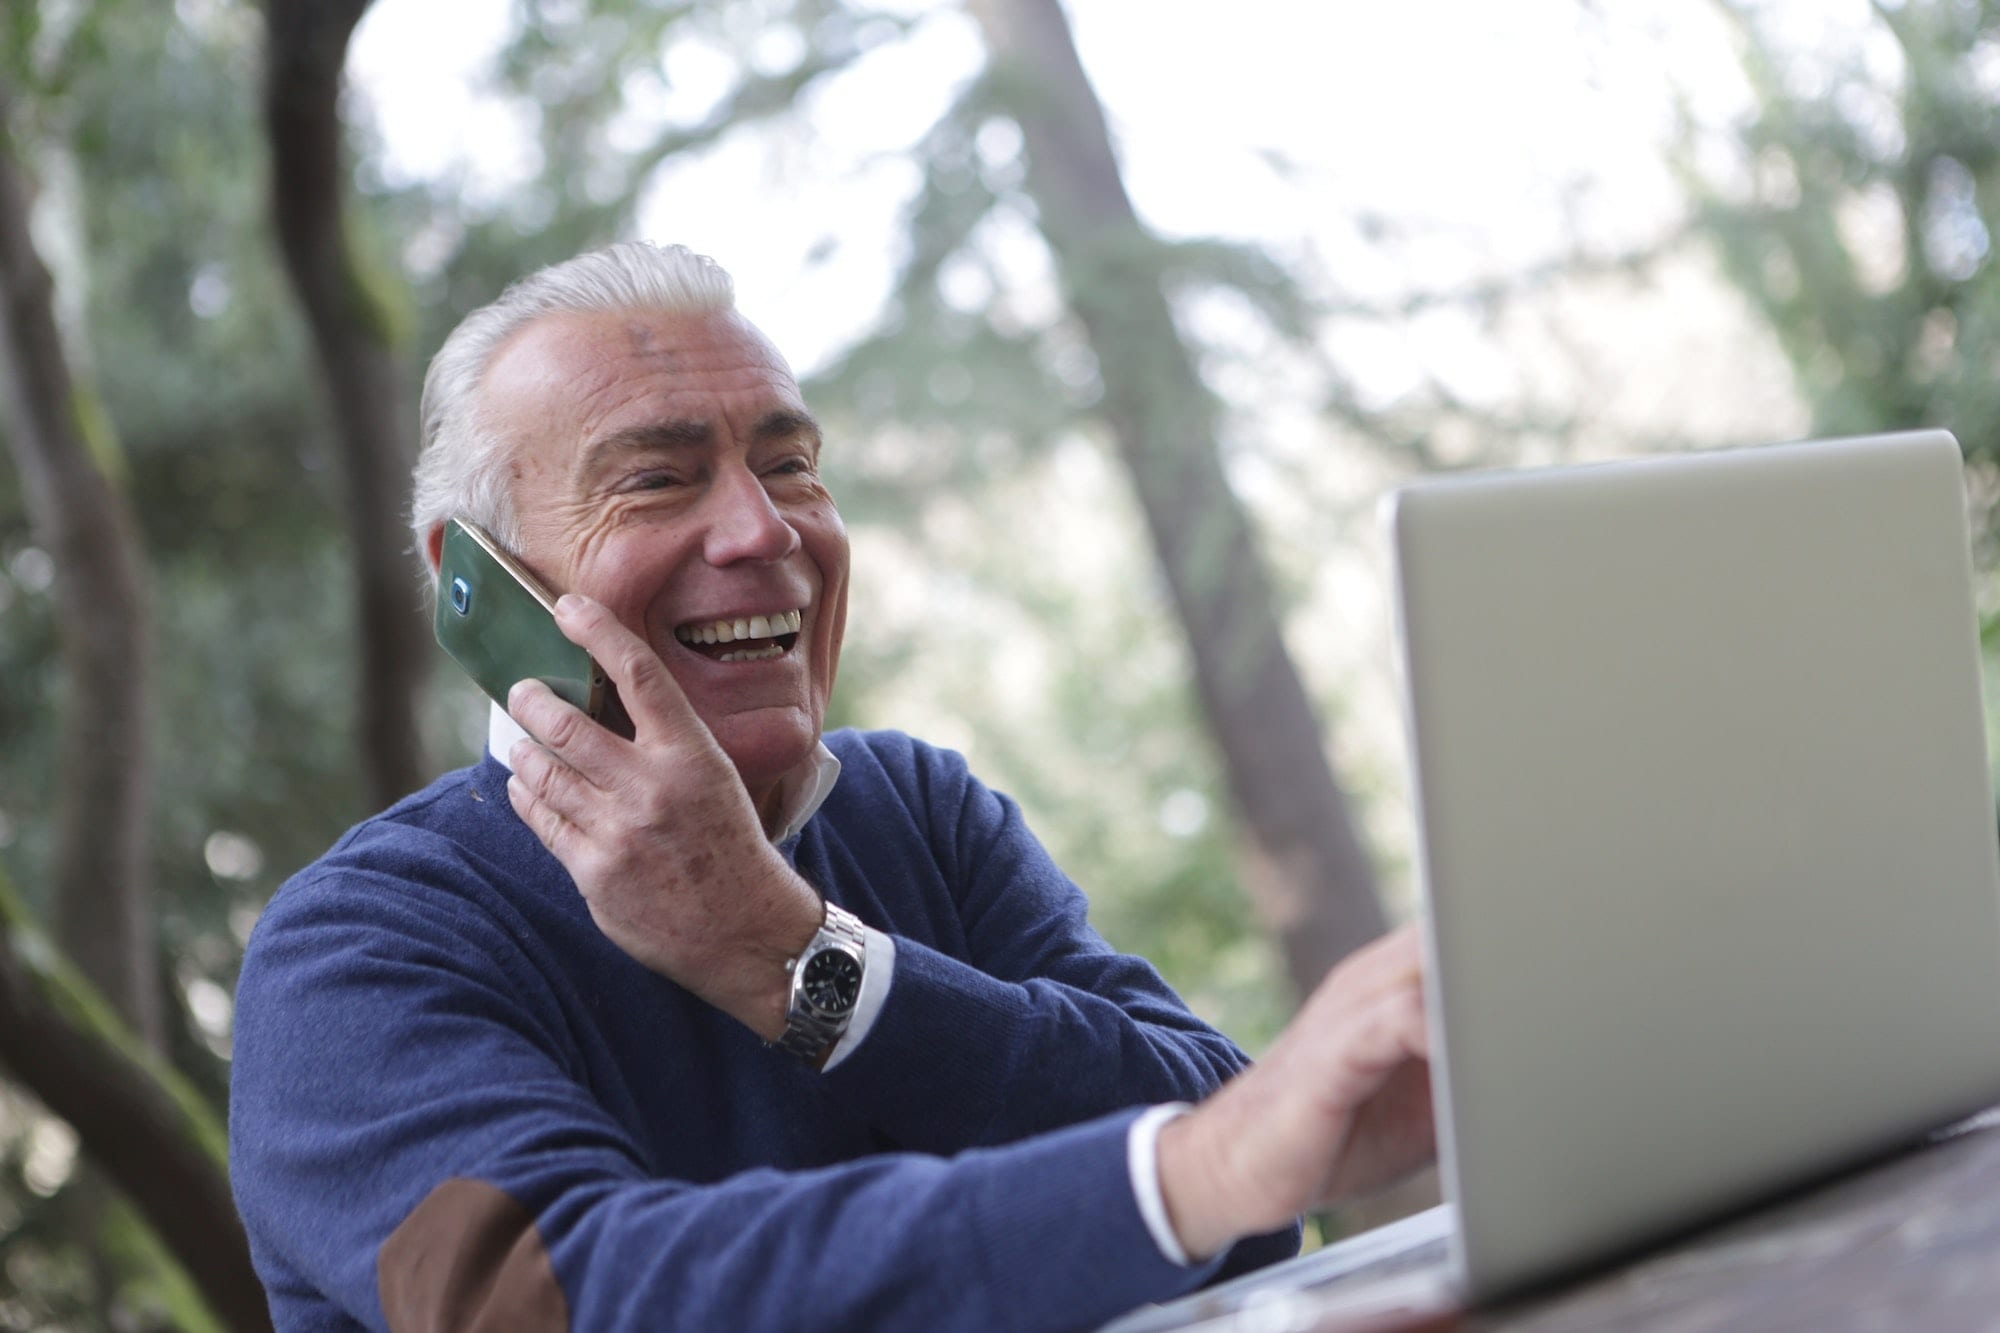 Photo of an elderly man on the phone and on his computer, smiling